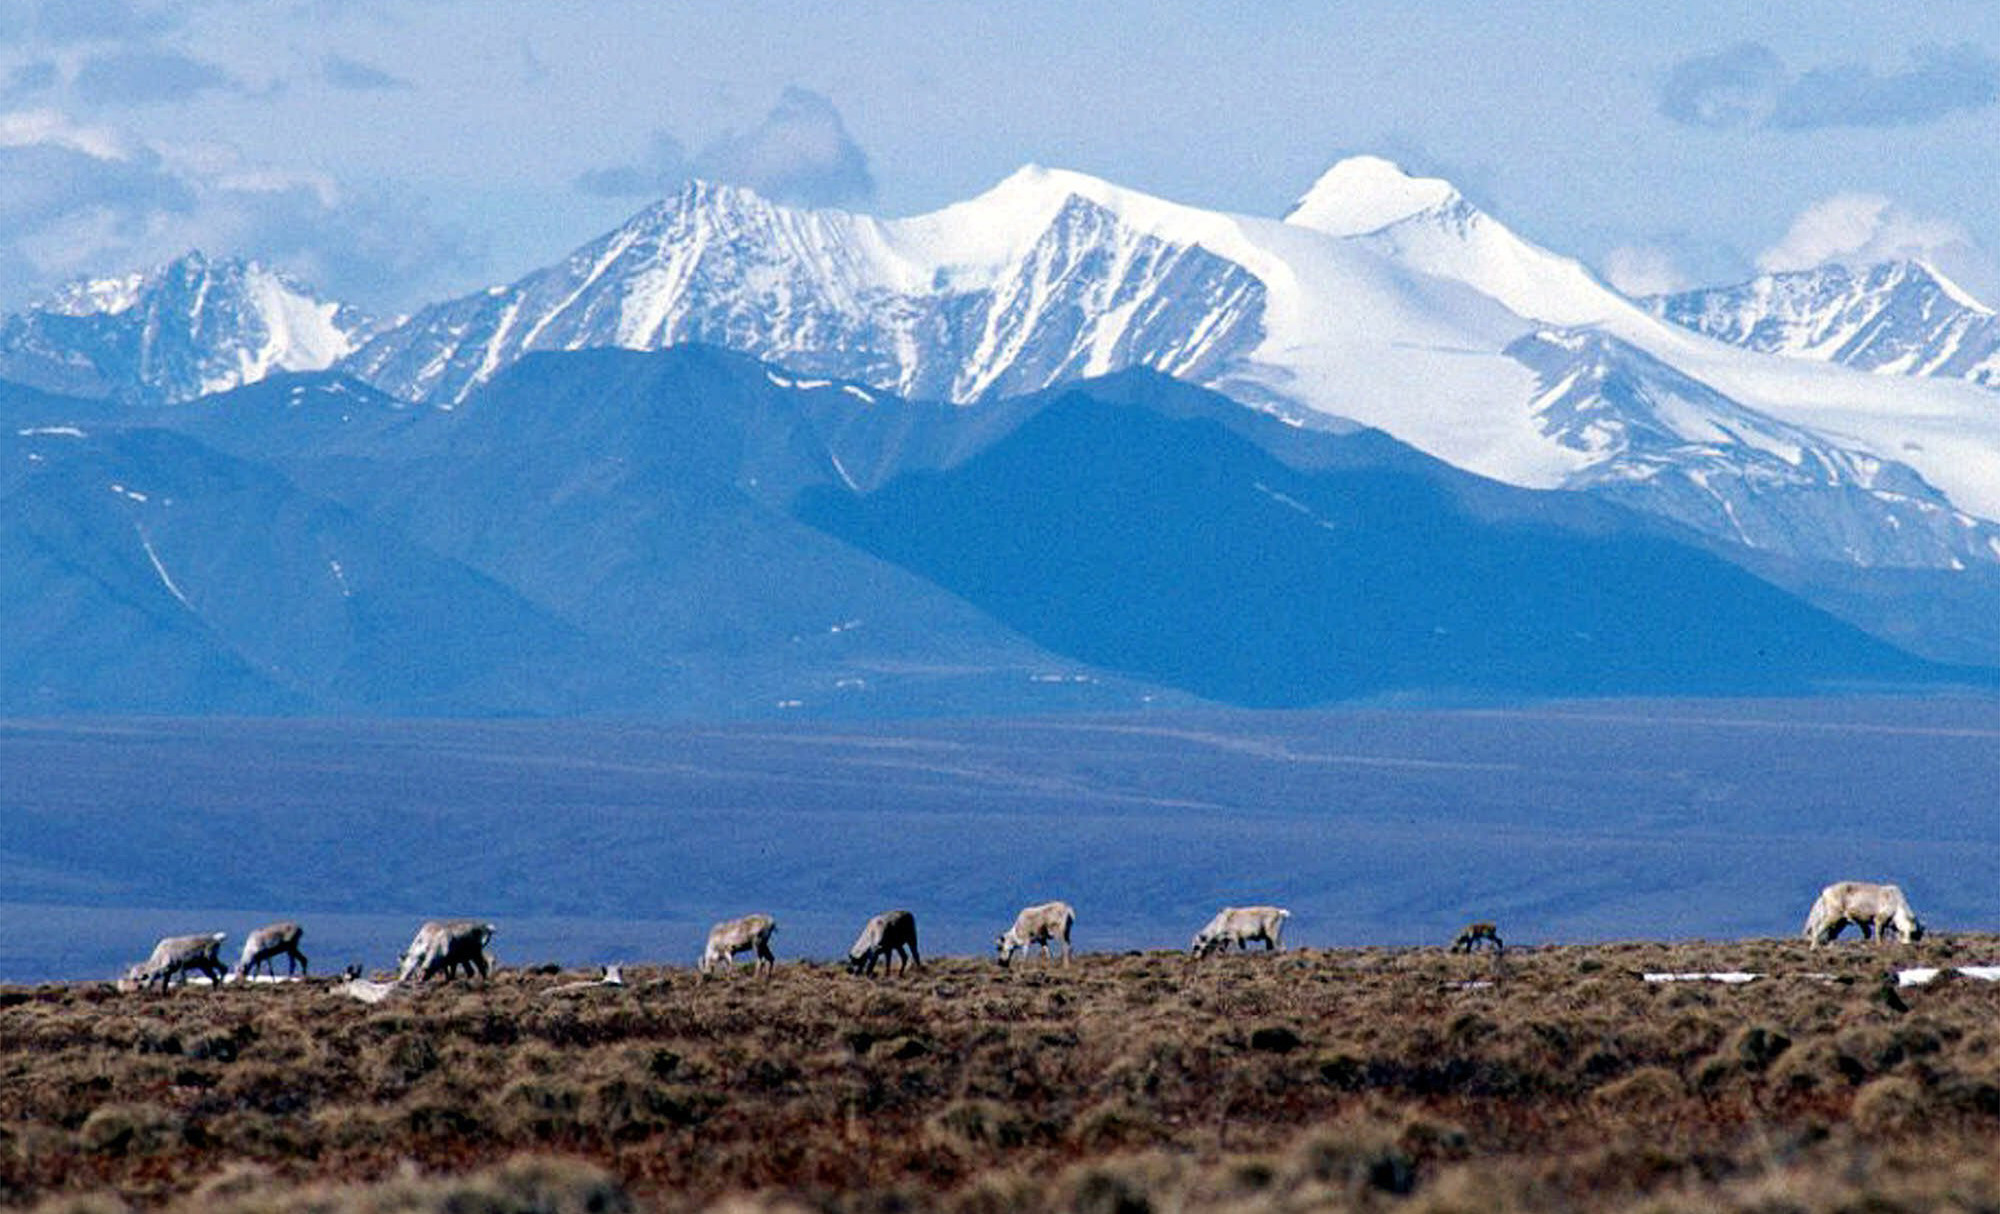 Congress votes to allow controversial hunting practices in Alaska